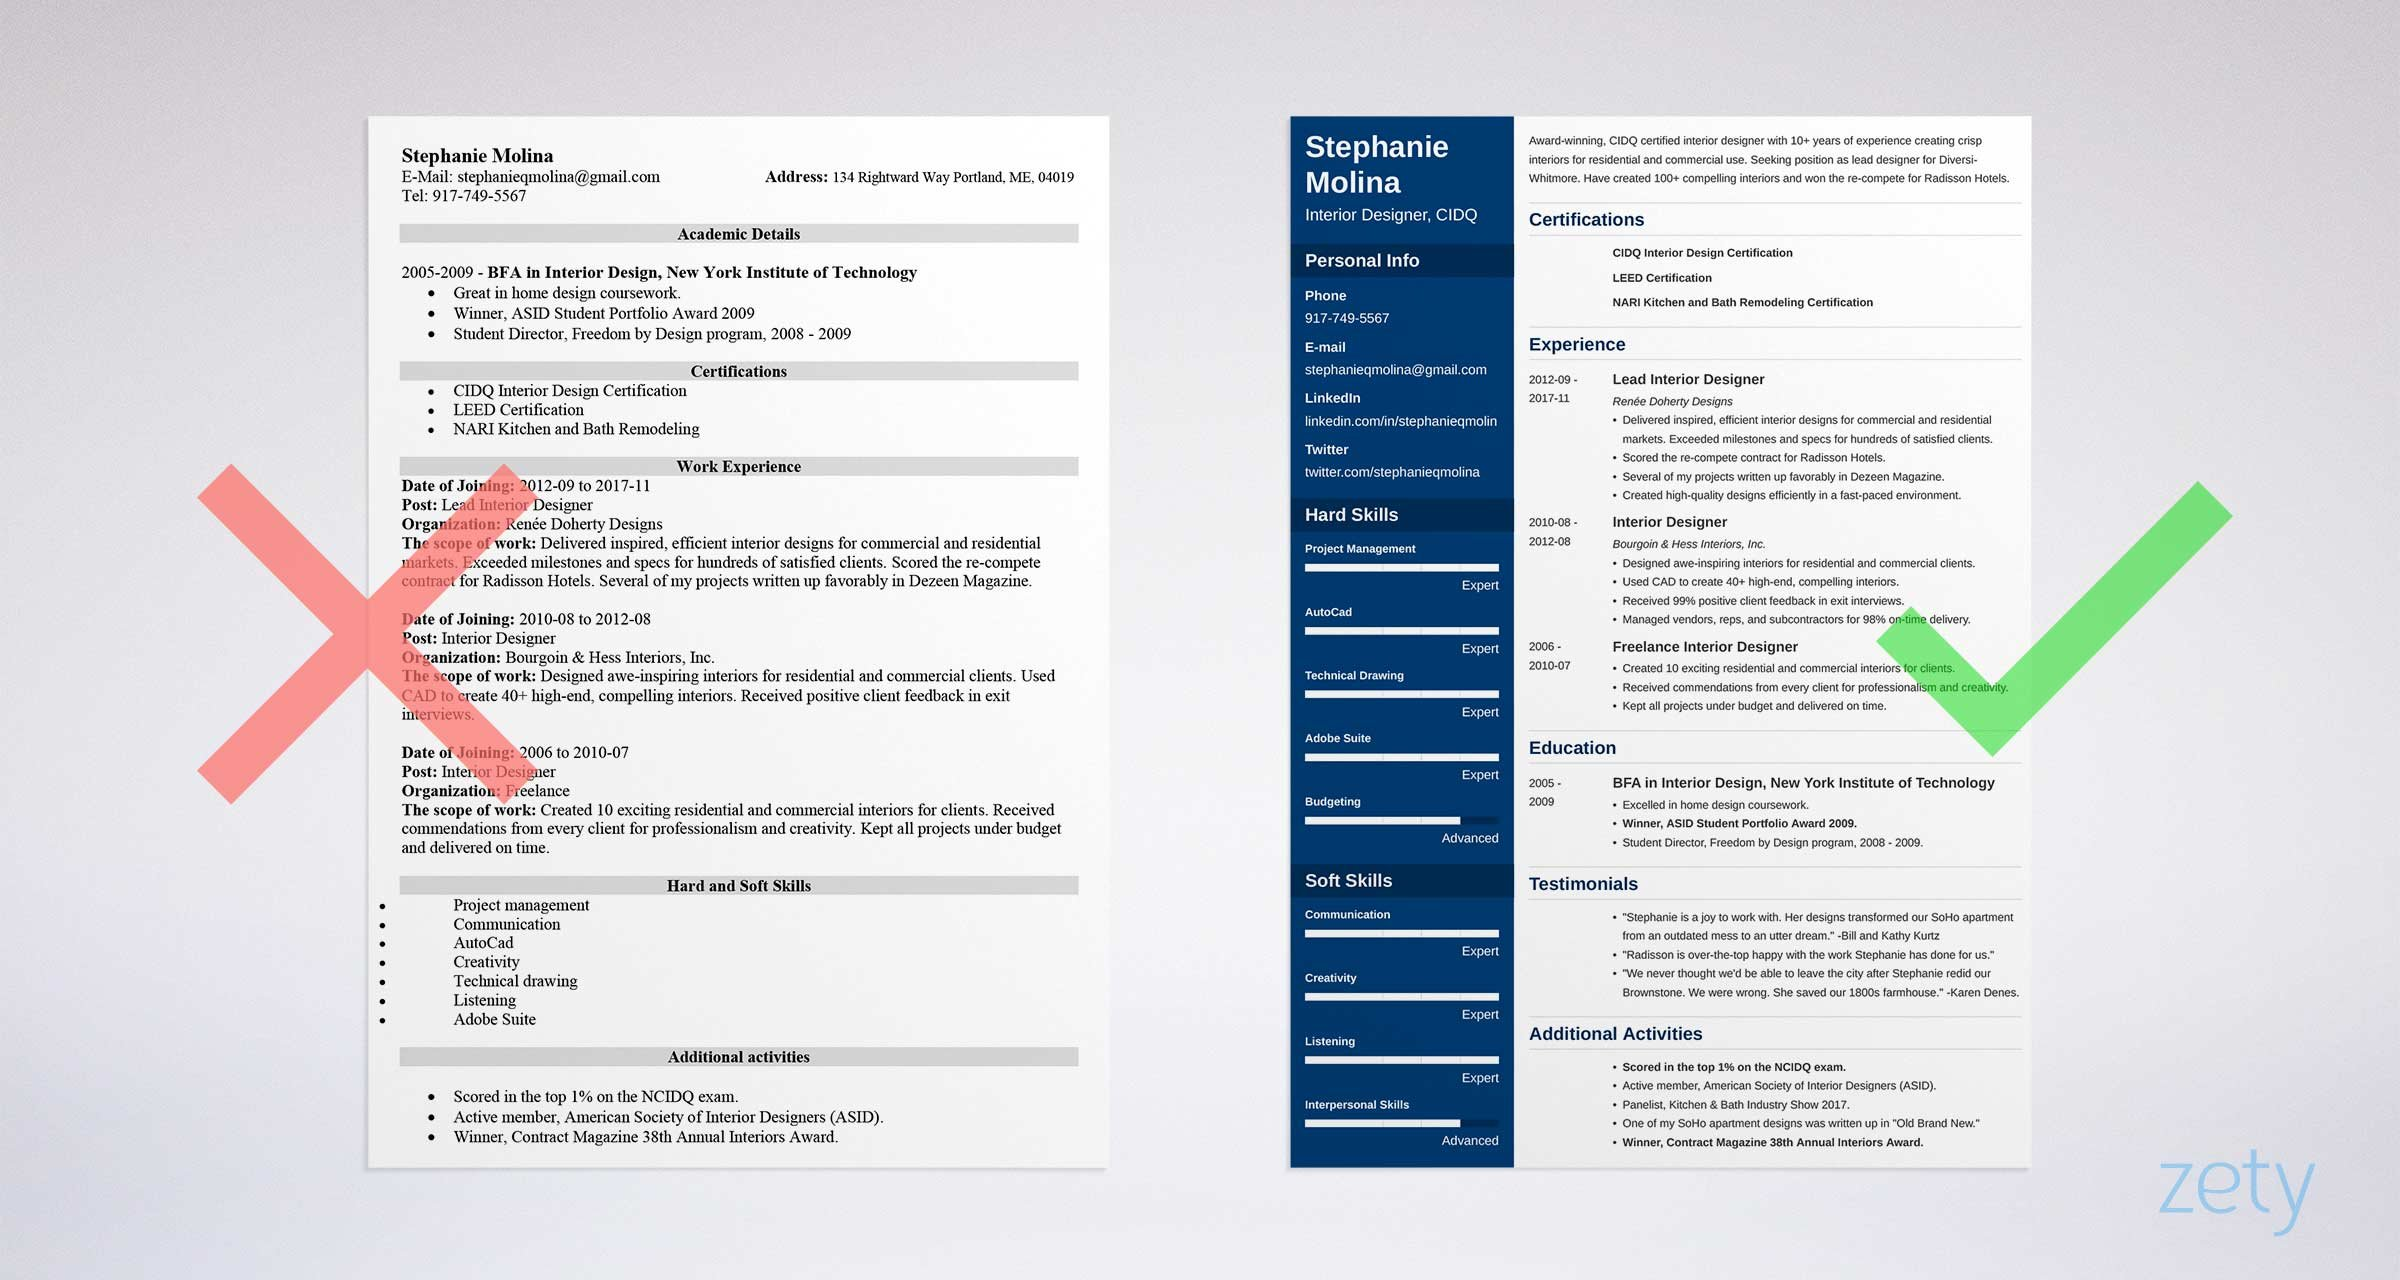 7 simple resume templates free download best.html